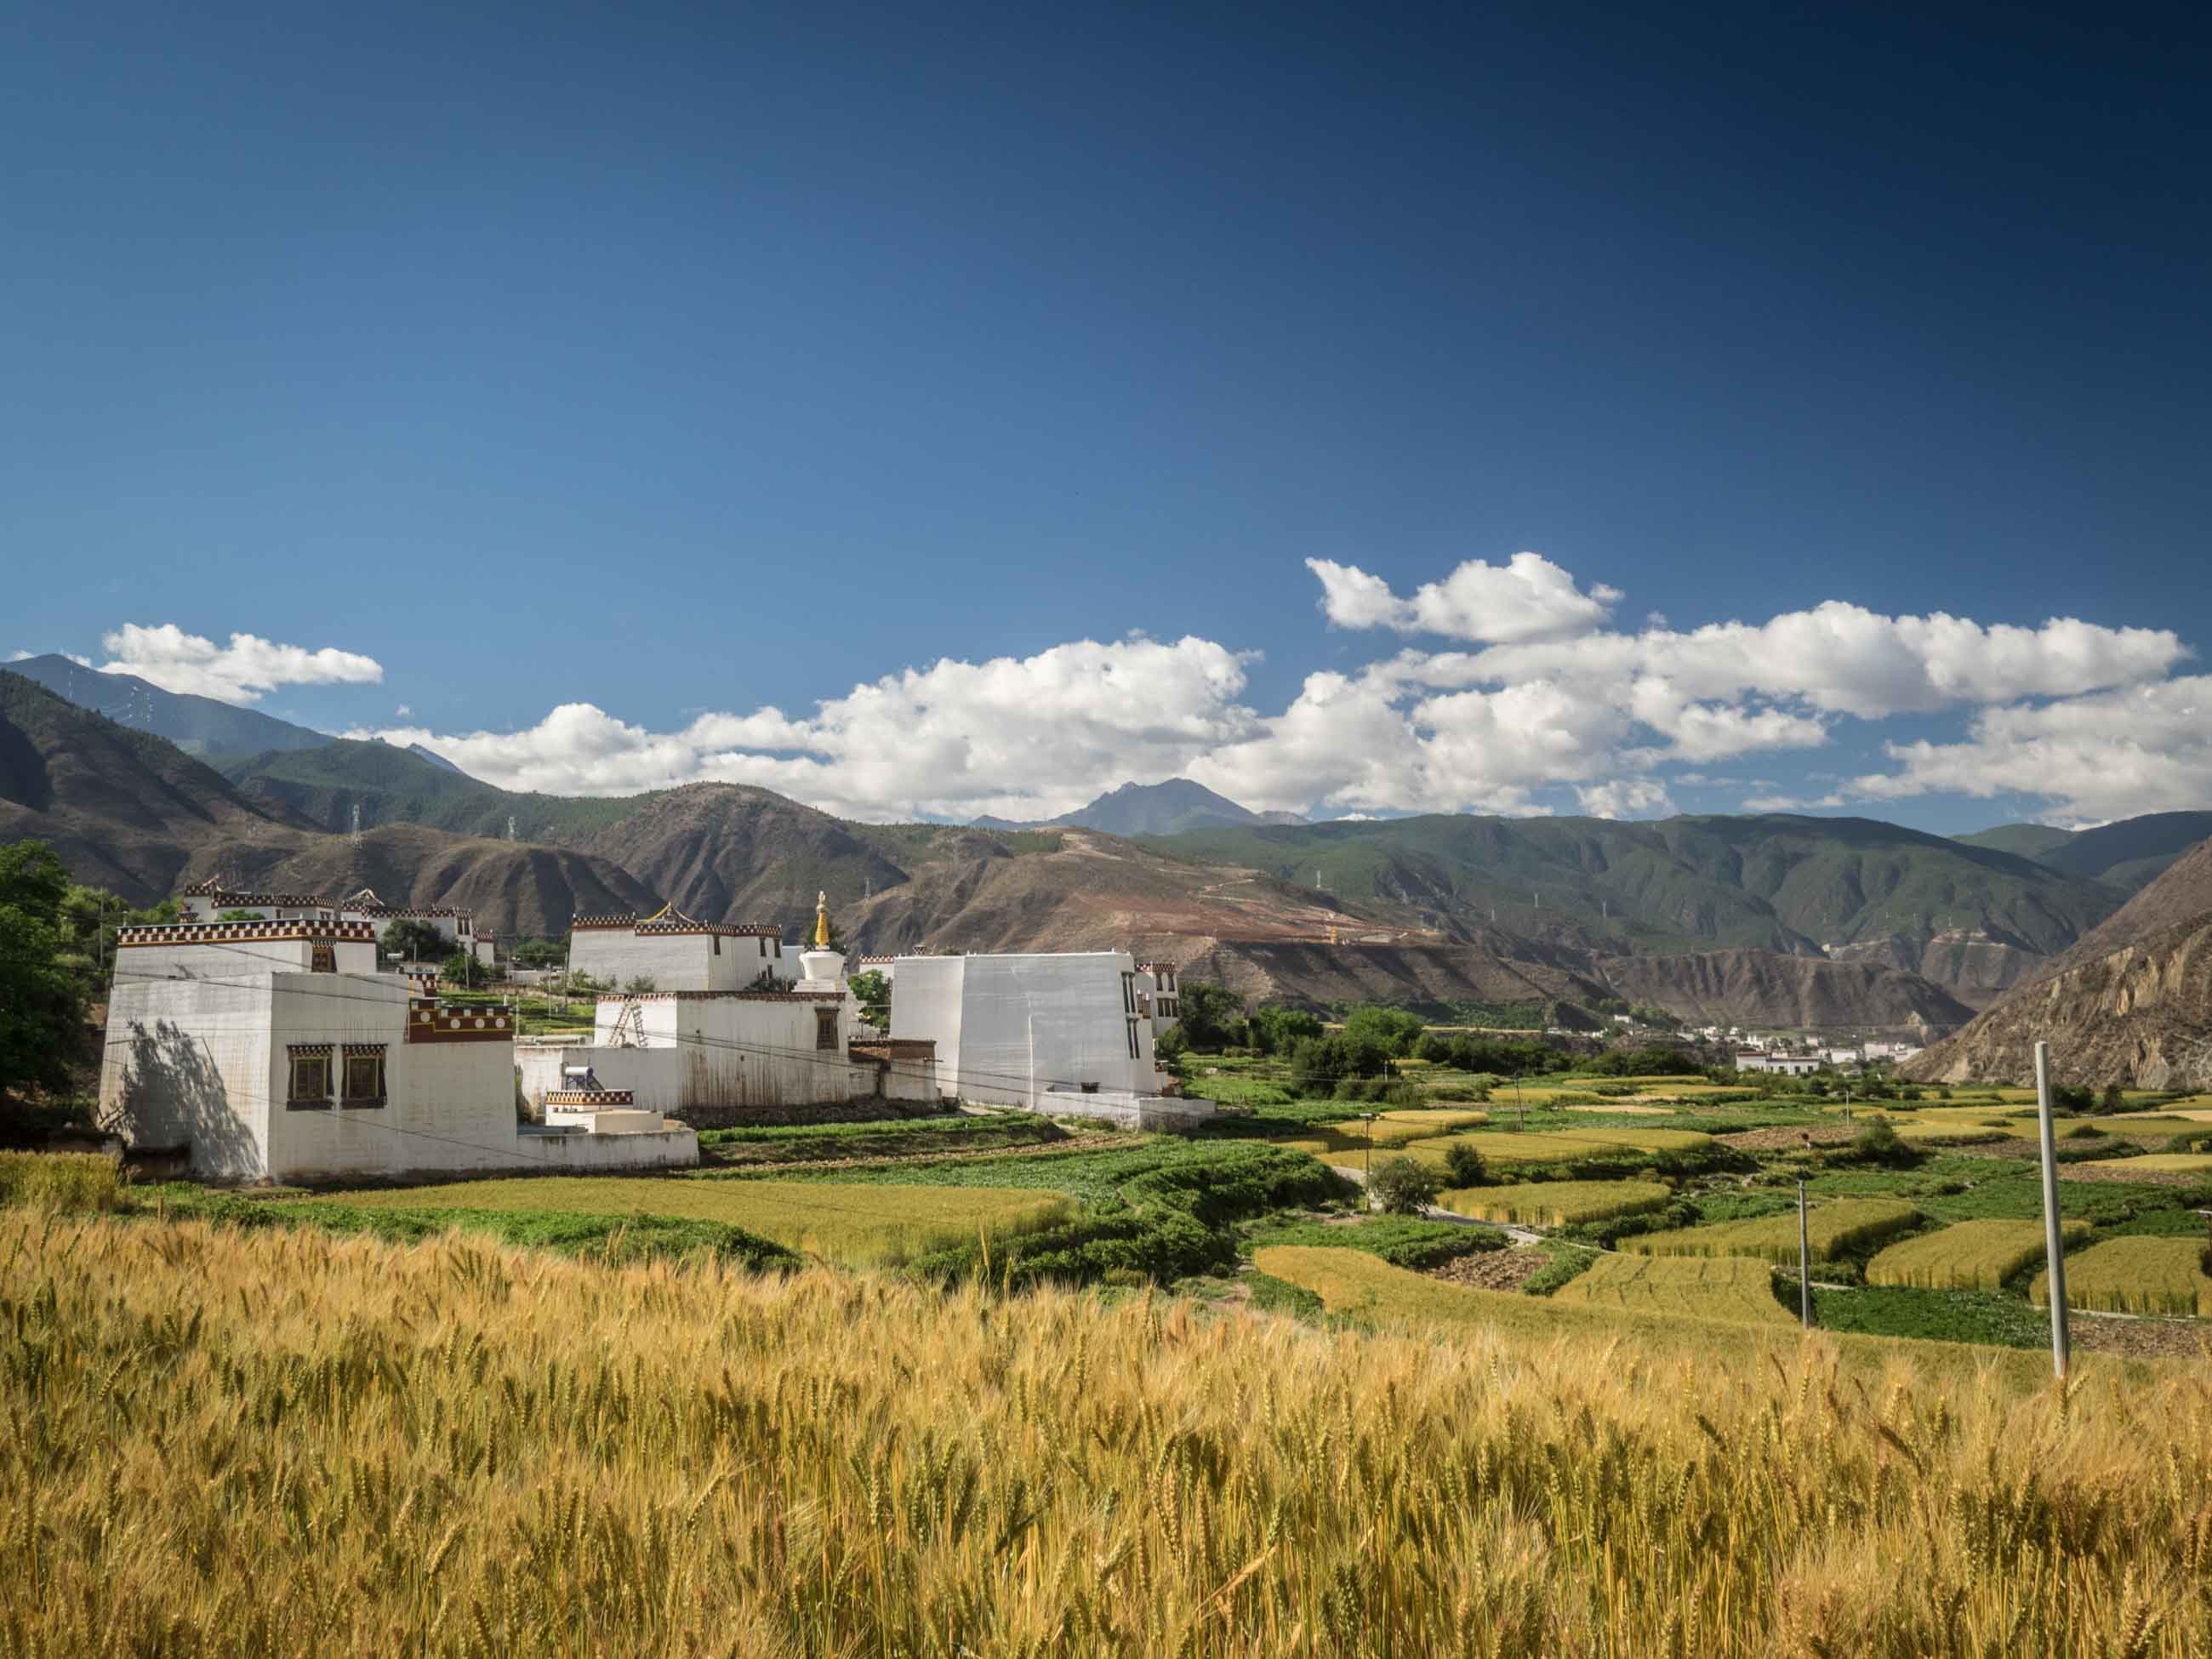 Tibetan house and barley field